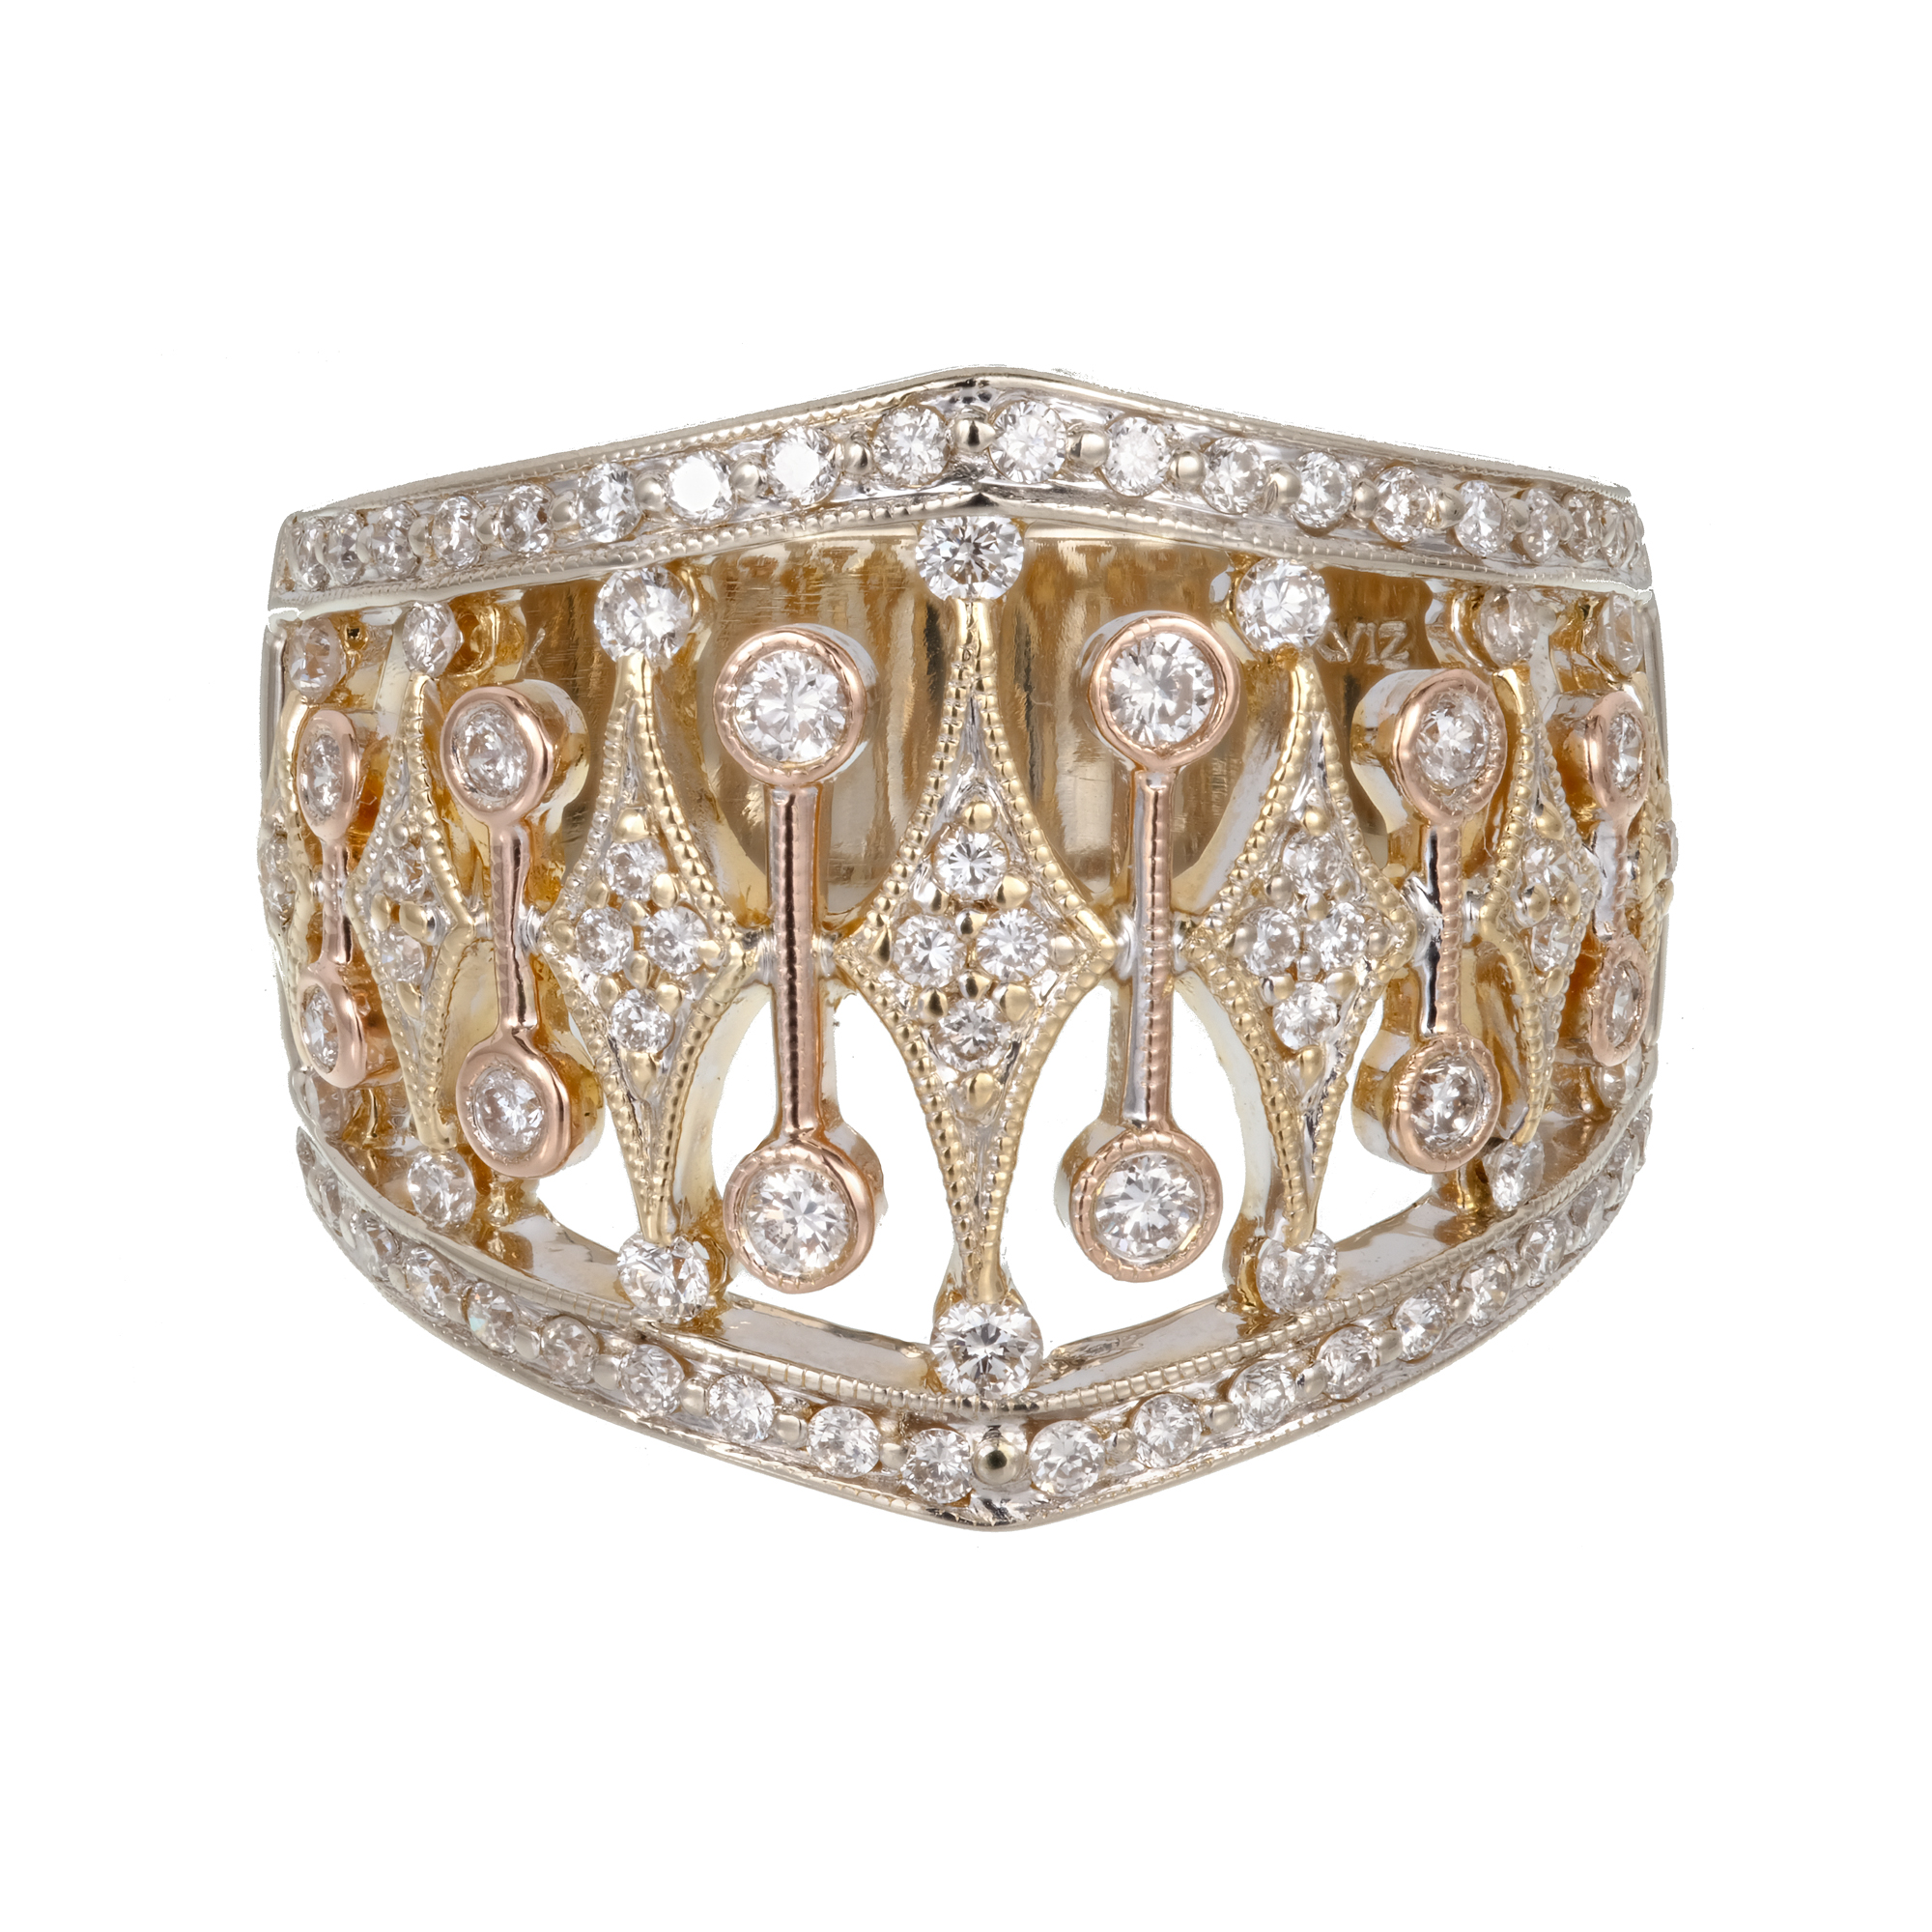 "Image of ""Parviz 18K White, Yellow and Pink Gold 0.70ct Diamond Band Ring Size 7"""